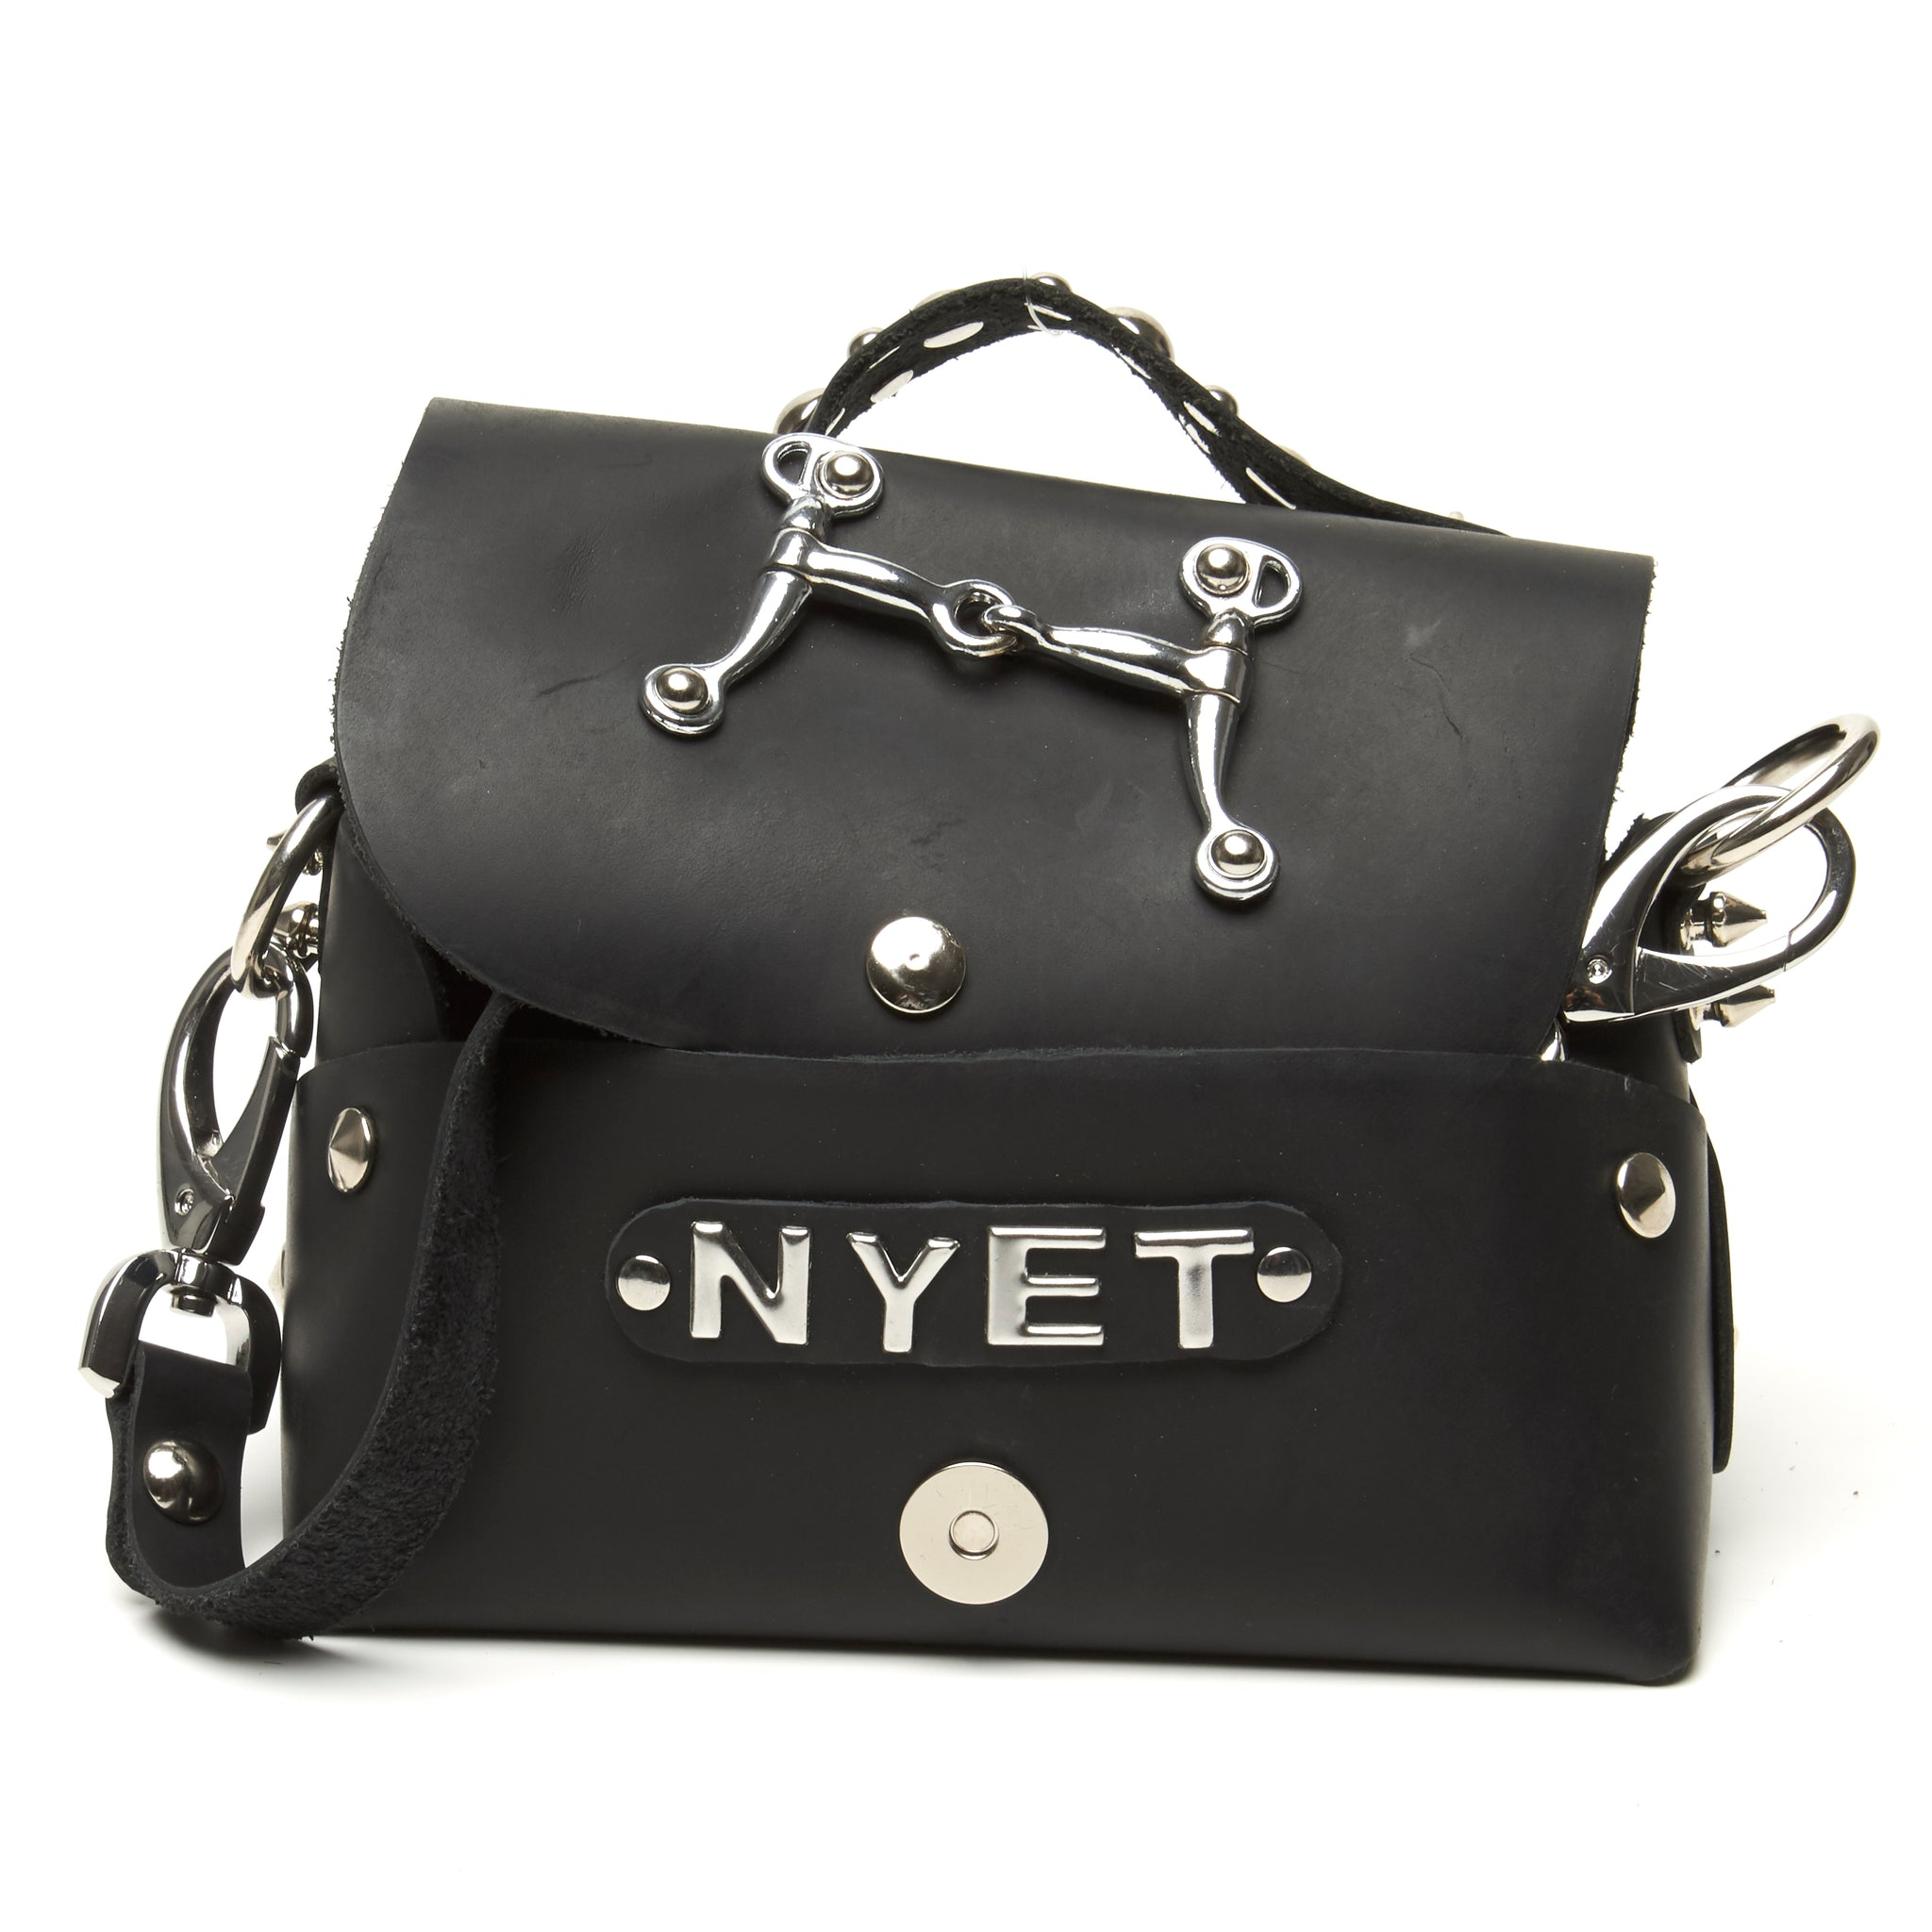 Nyet Jewelry leather lunch box evening bag